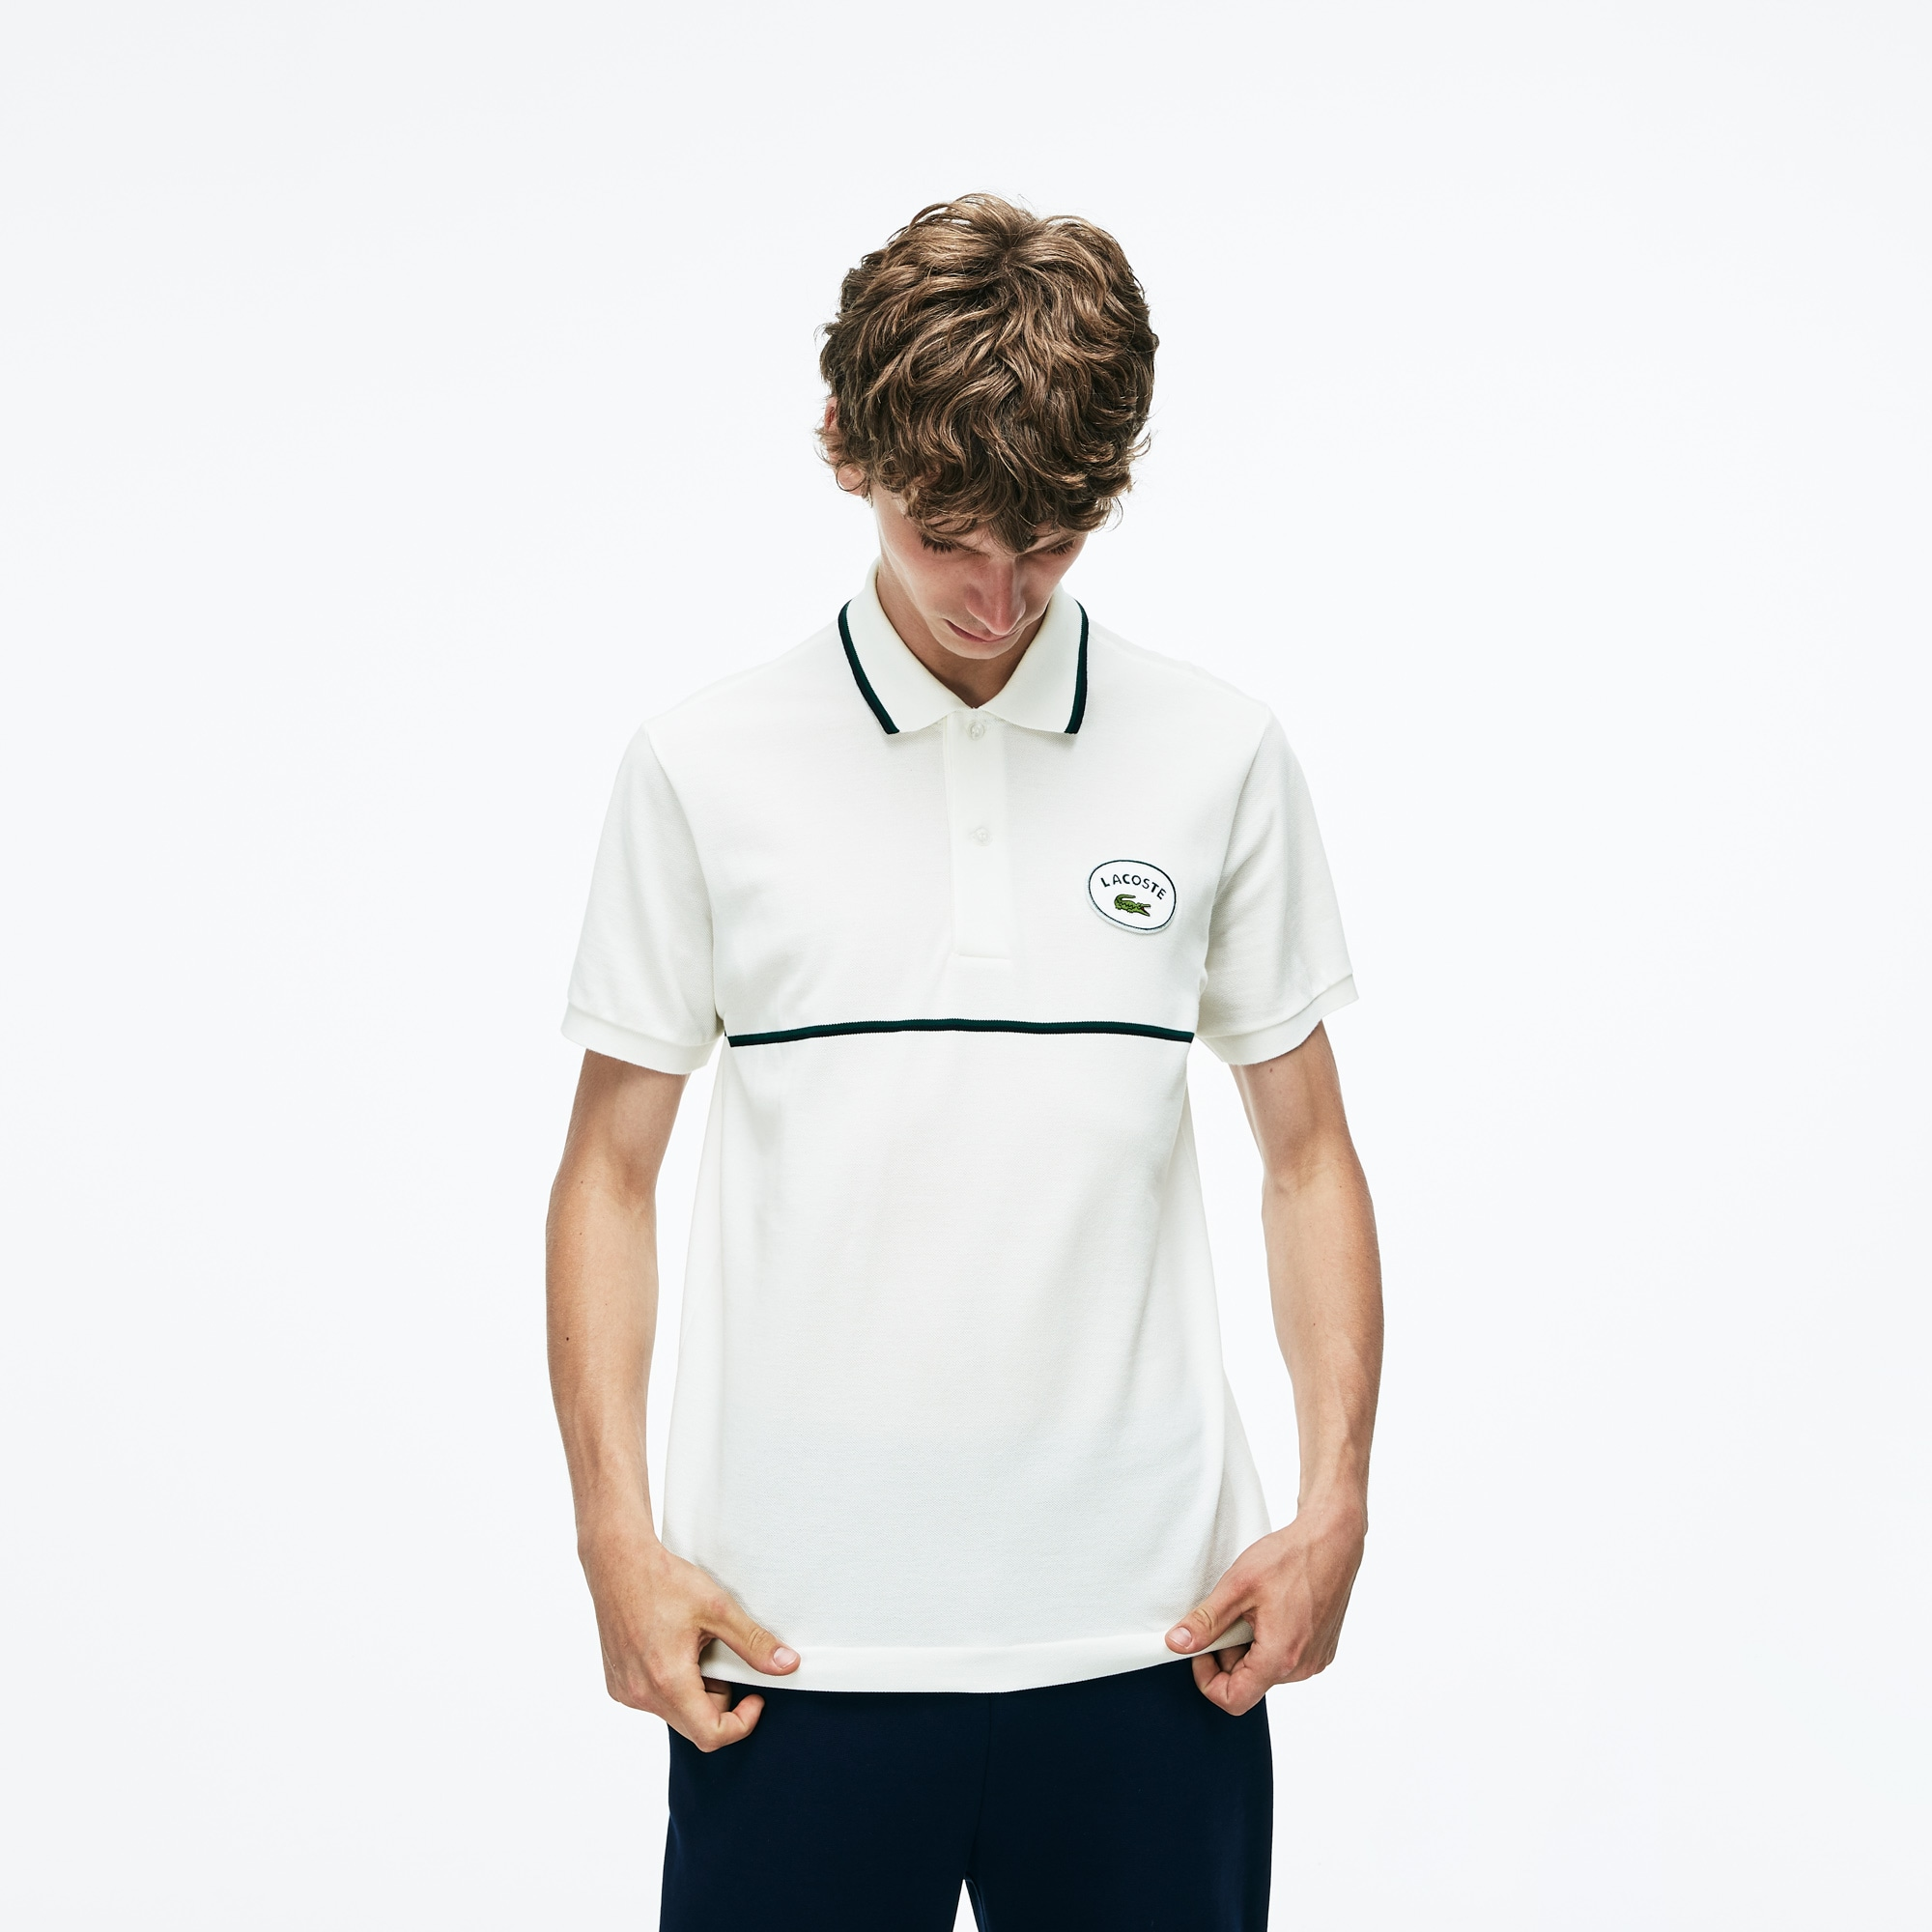 Men's Slim Fit Striped Accents Petit Piqué Polo